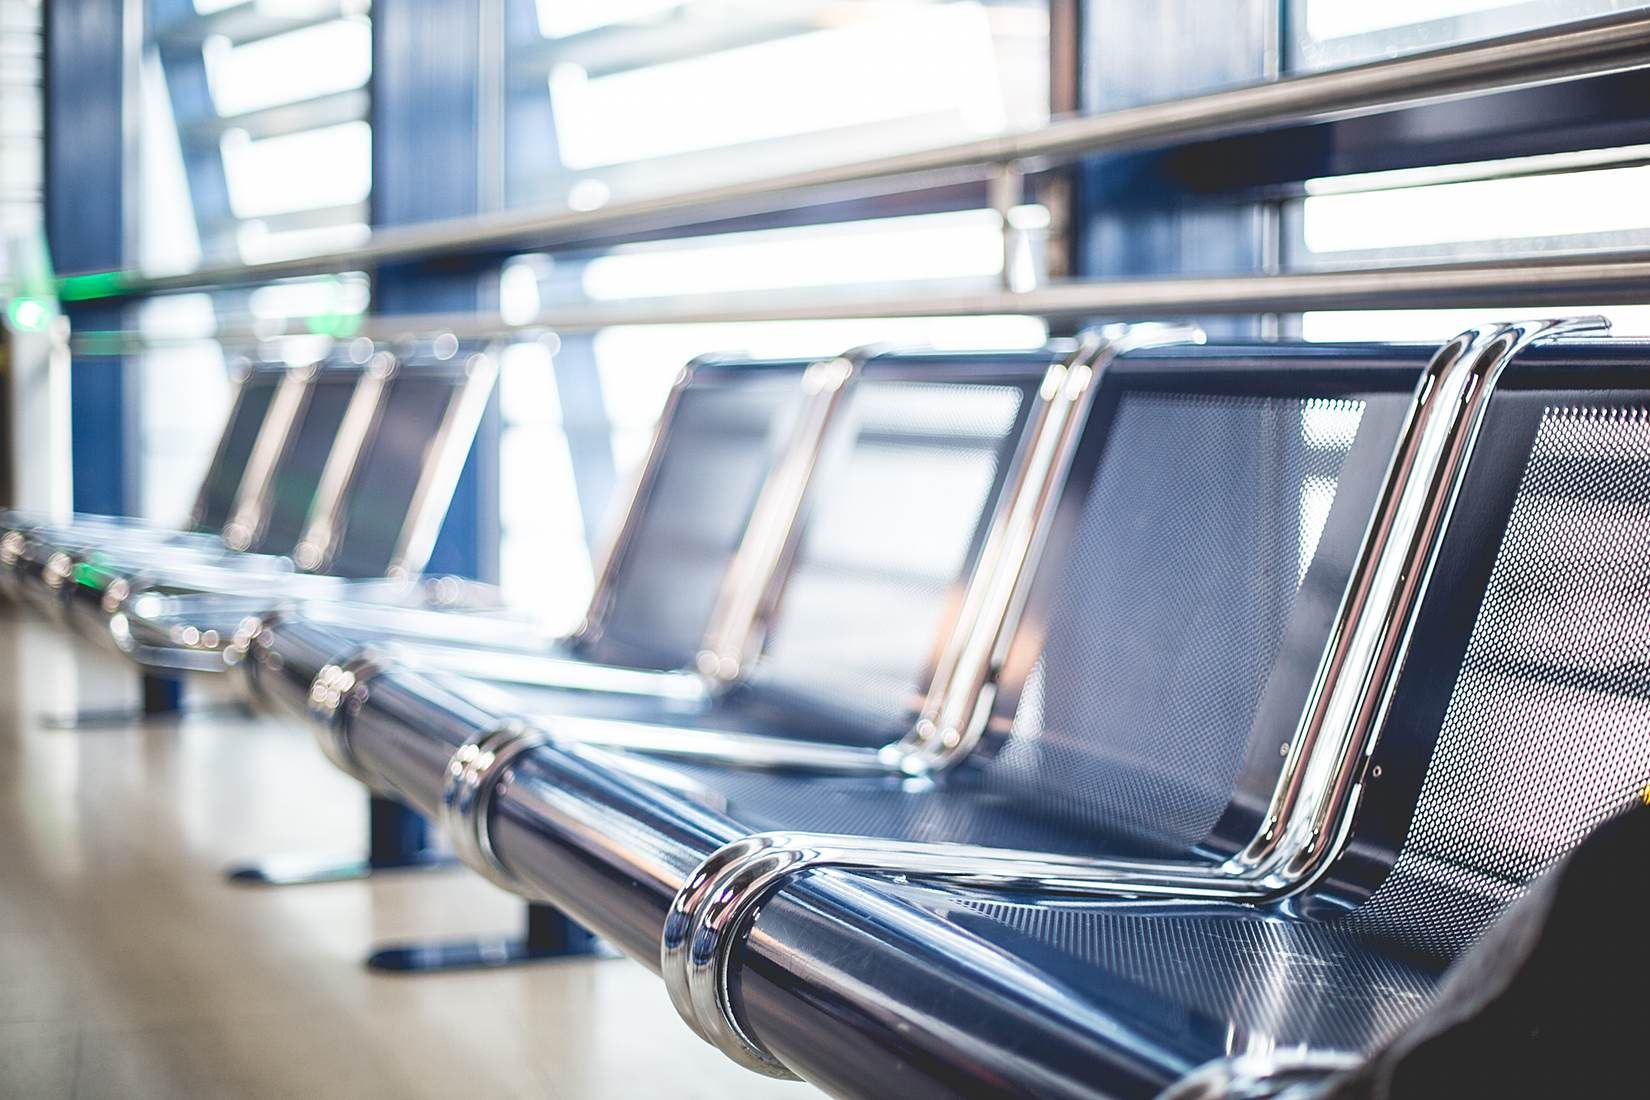 Empty Airport Seats in Terminal Waiting Area Free Stock Photo